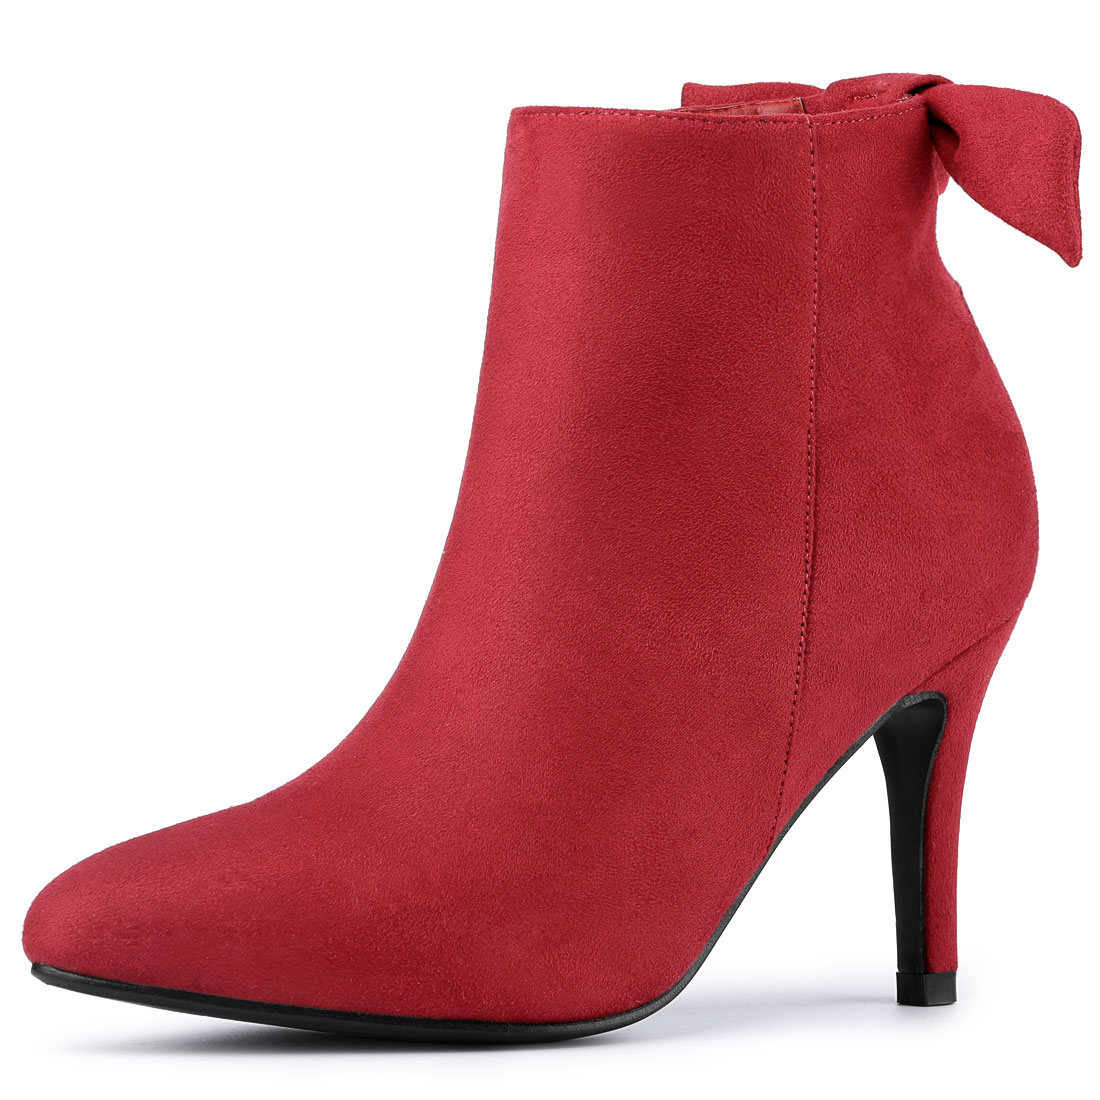 Allegra K Women's Pointed Toe Stiletto Heel Ankle Boots Red US 5.5